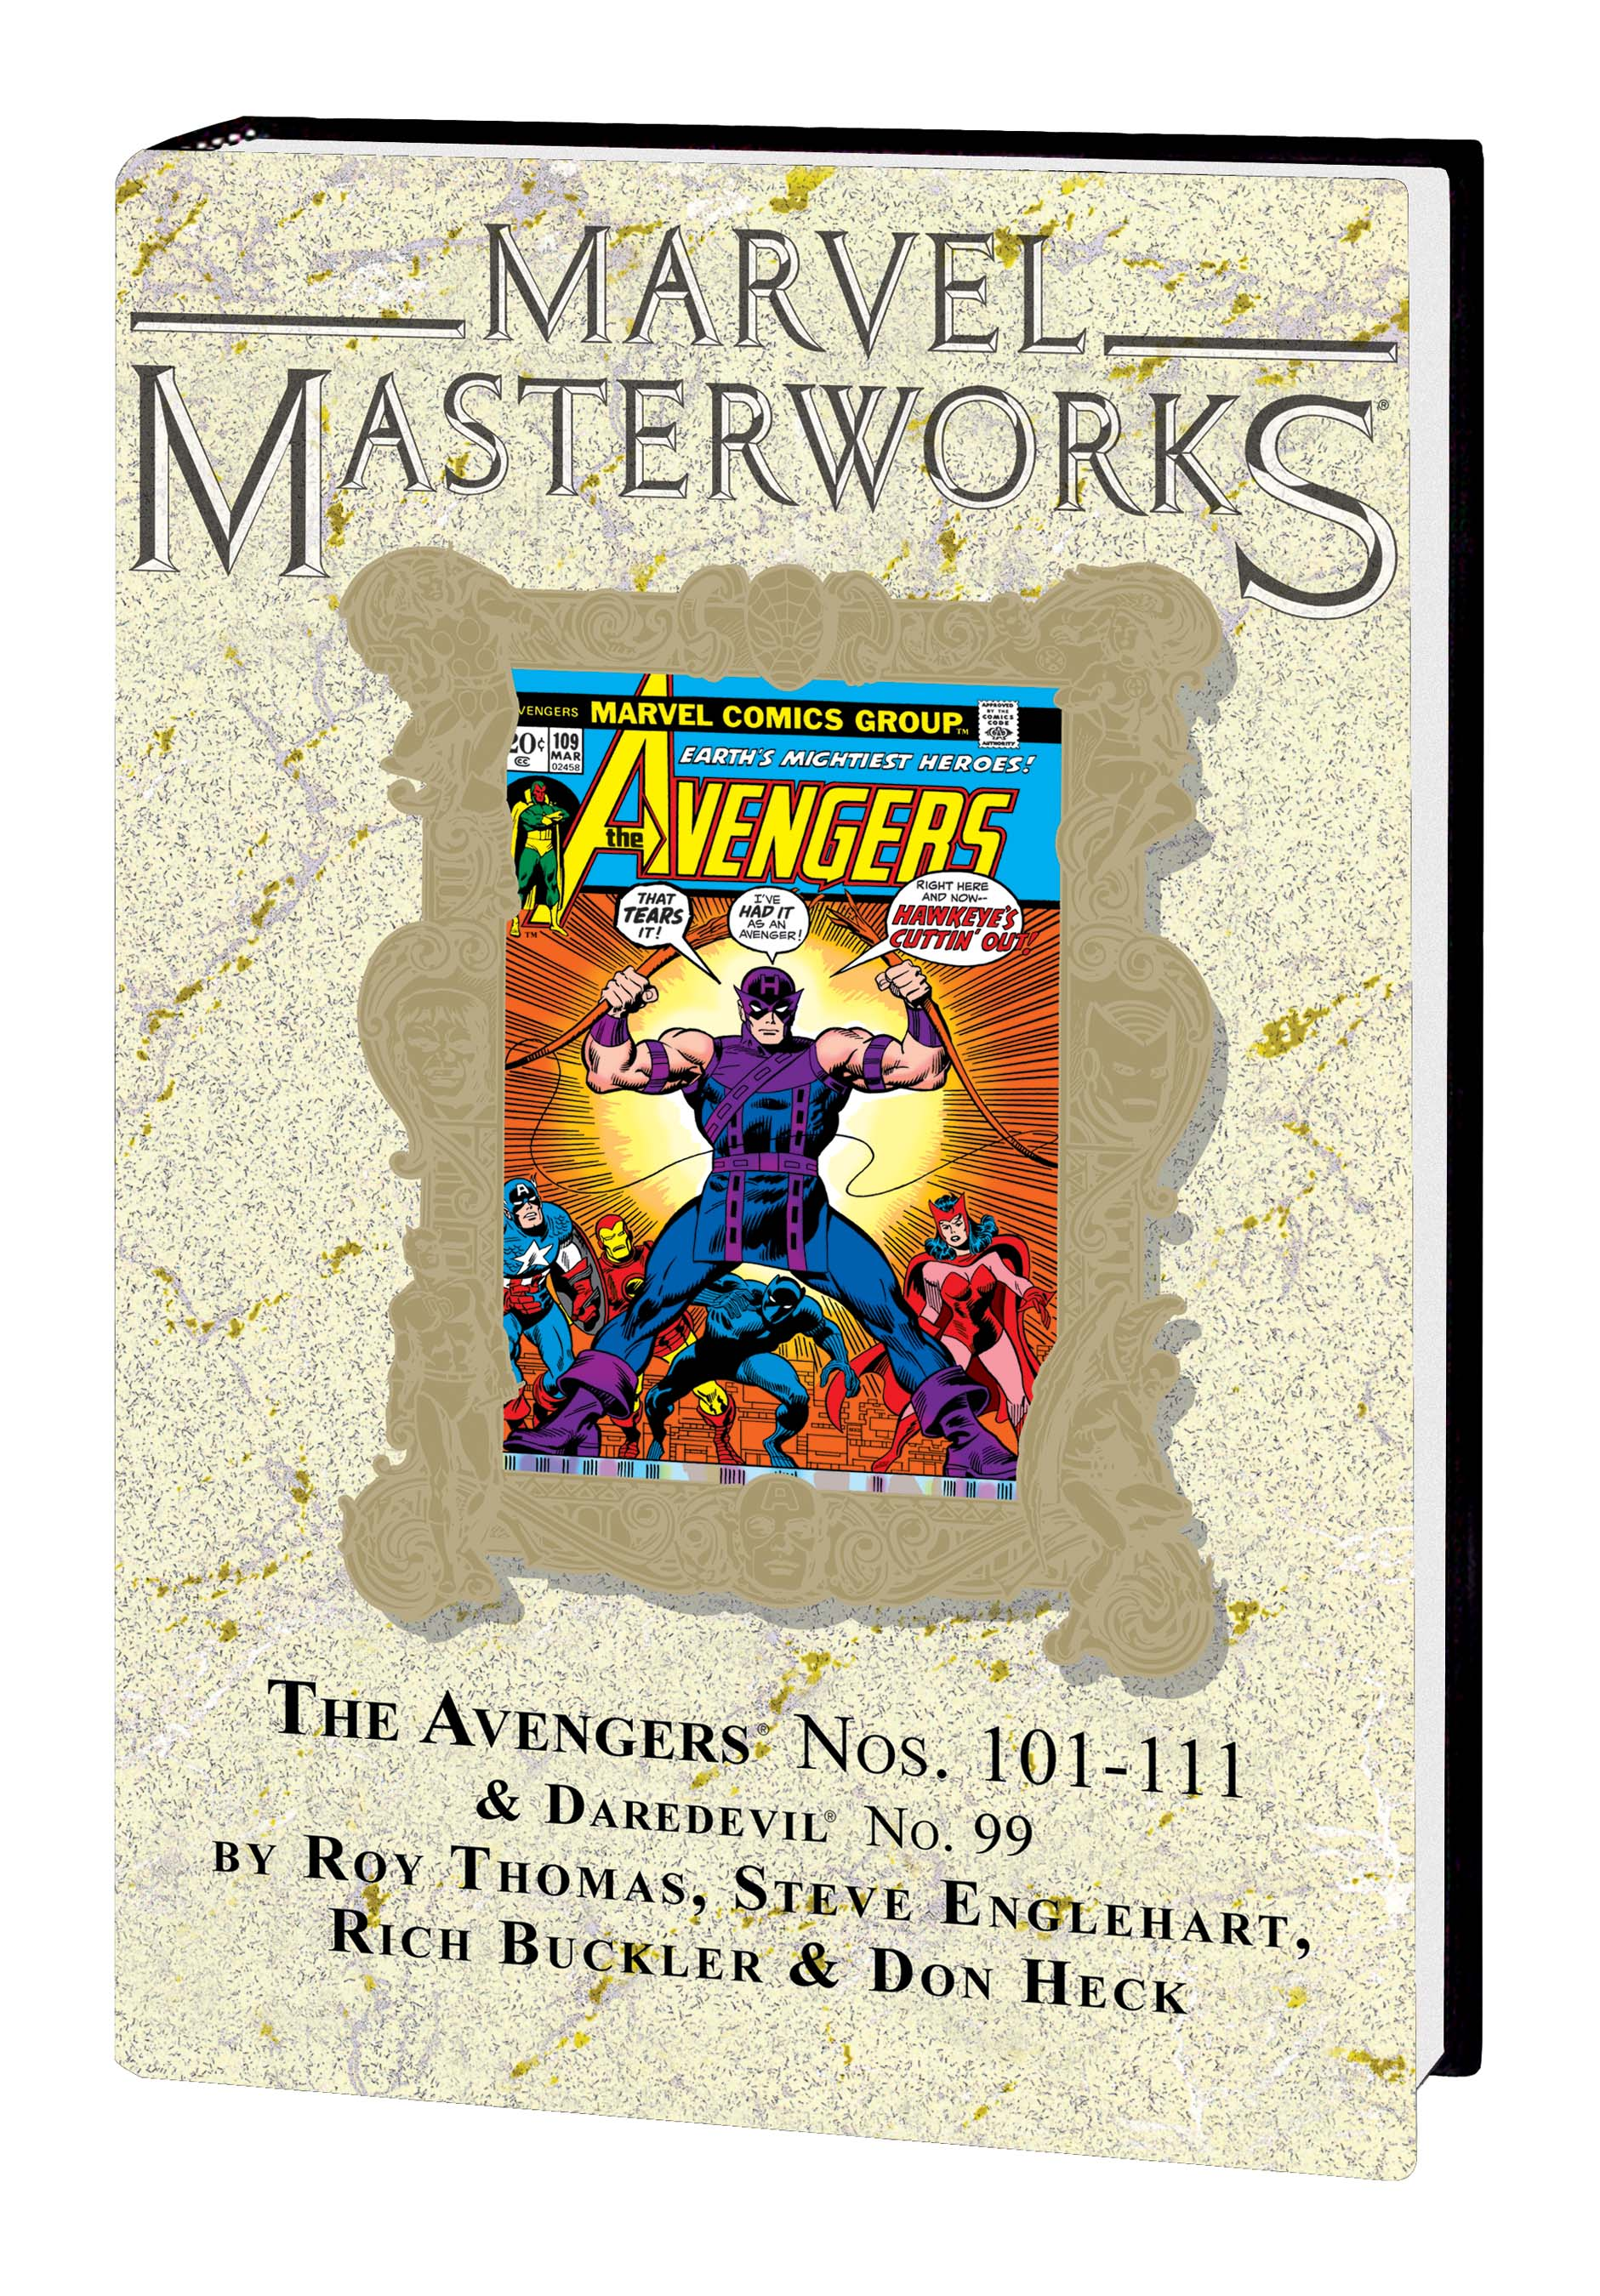 Marvel Masterworks: The Avengers Vol. 11 HC (DM Variant) (Hardcover)